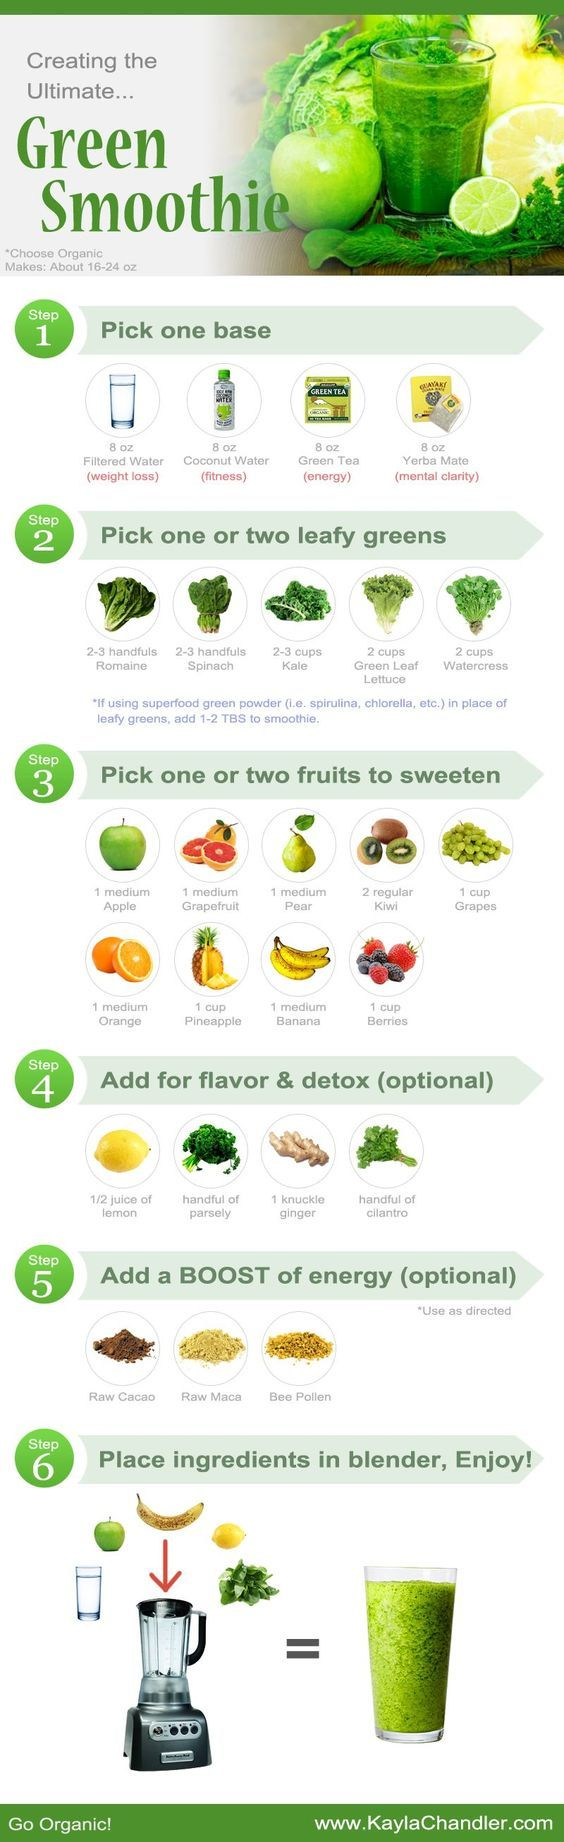 According To Kayla Chandler, This Guide To Make Green Smoothies Will Be  Goog For Your